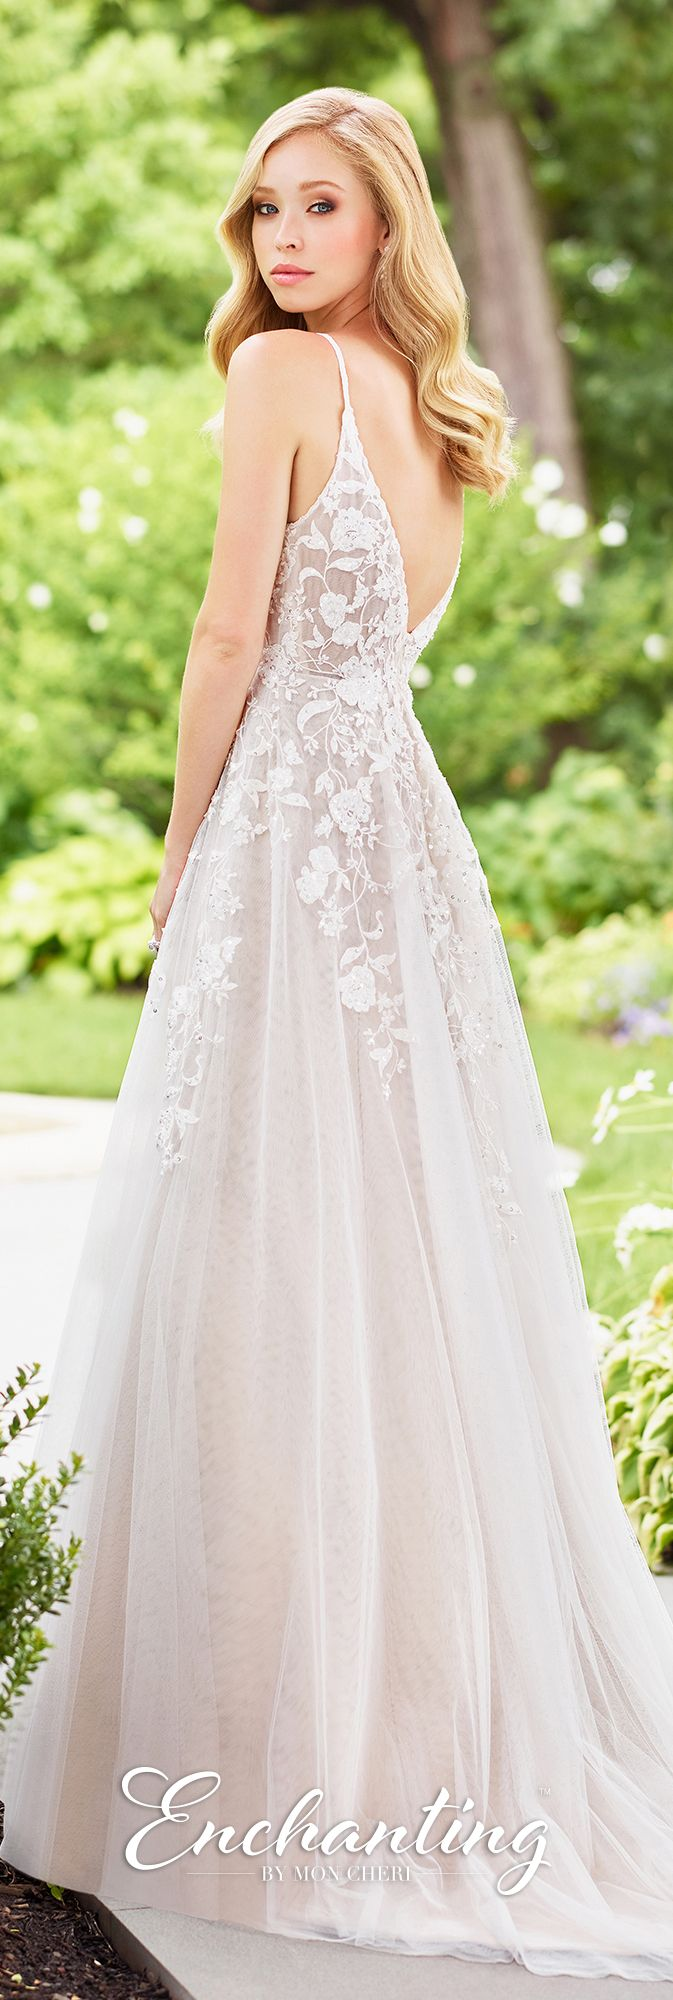 Enchanting By Mon Cheri 118136 - Coming soon to Blush Bridal & Prom - Concord, CA - www.myblushbridal.com